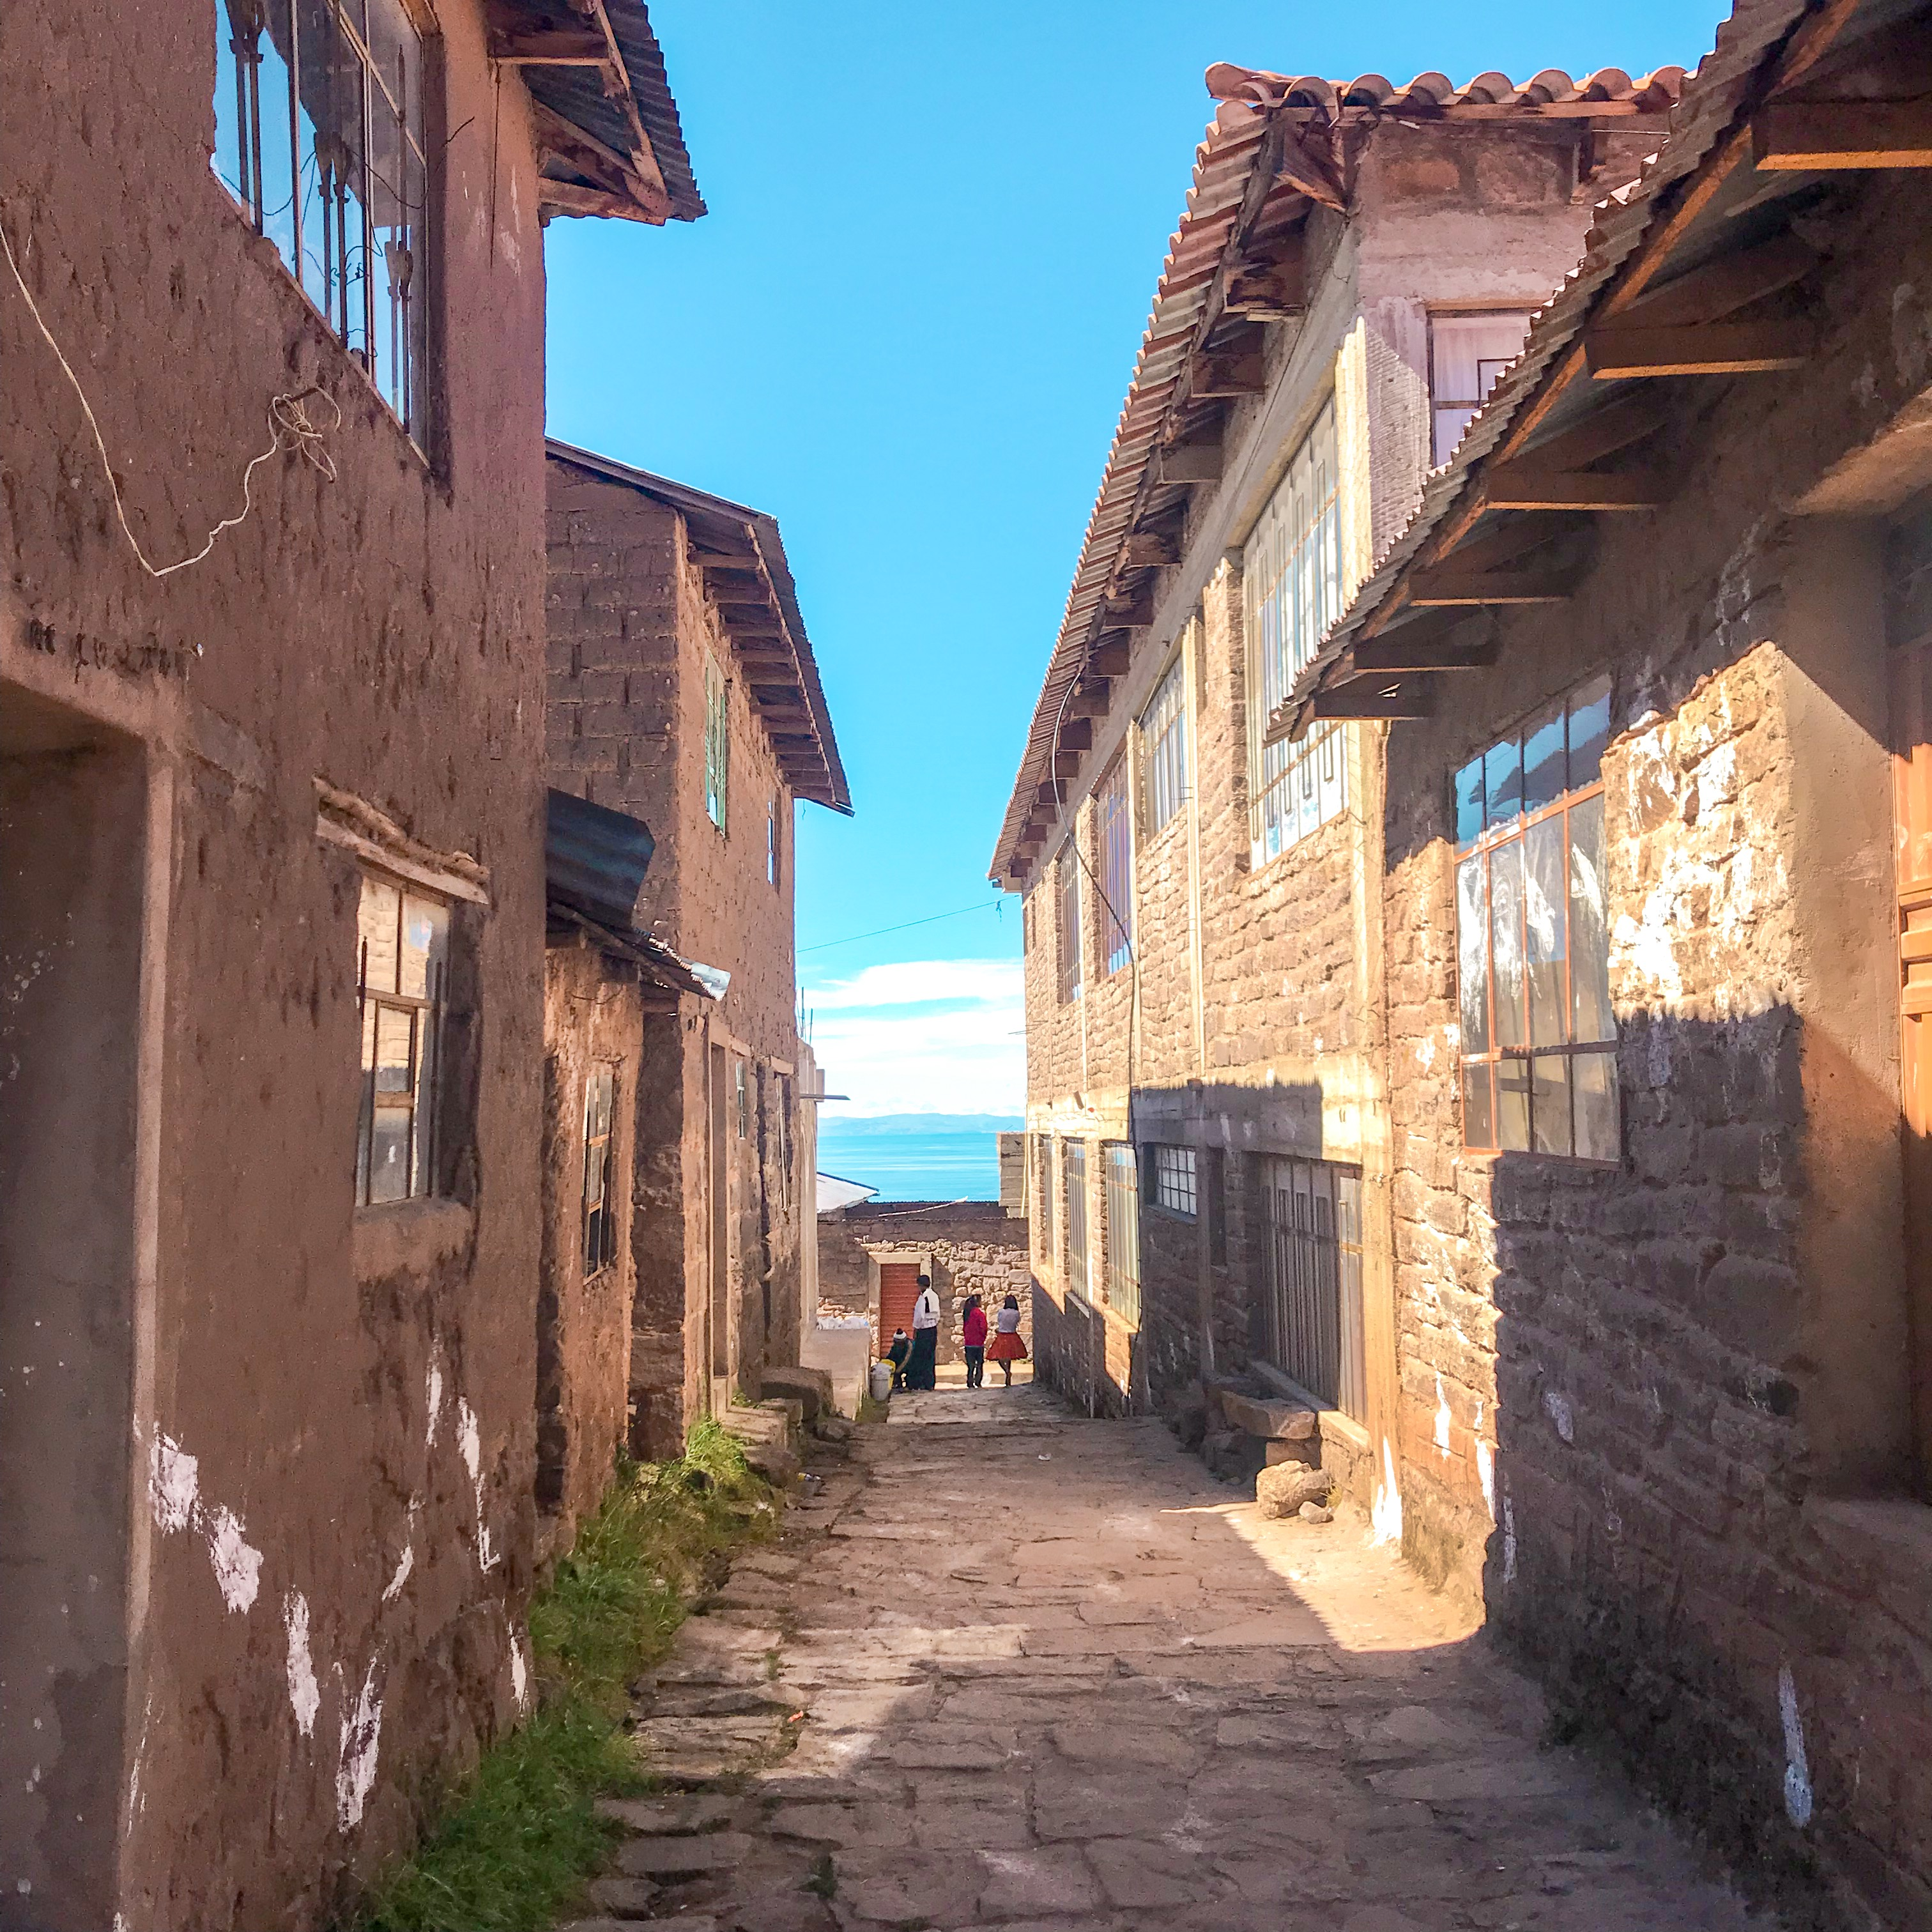 The streets of Taquile Island, Lake Titicaca, Peru, just off the island's main square.